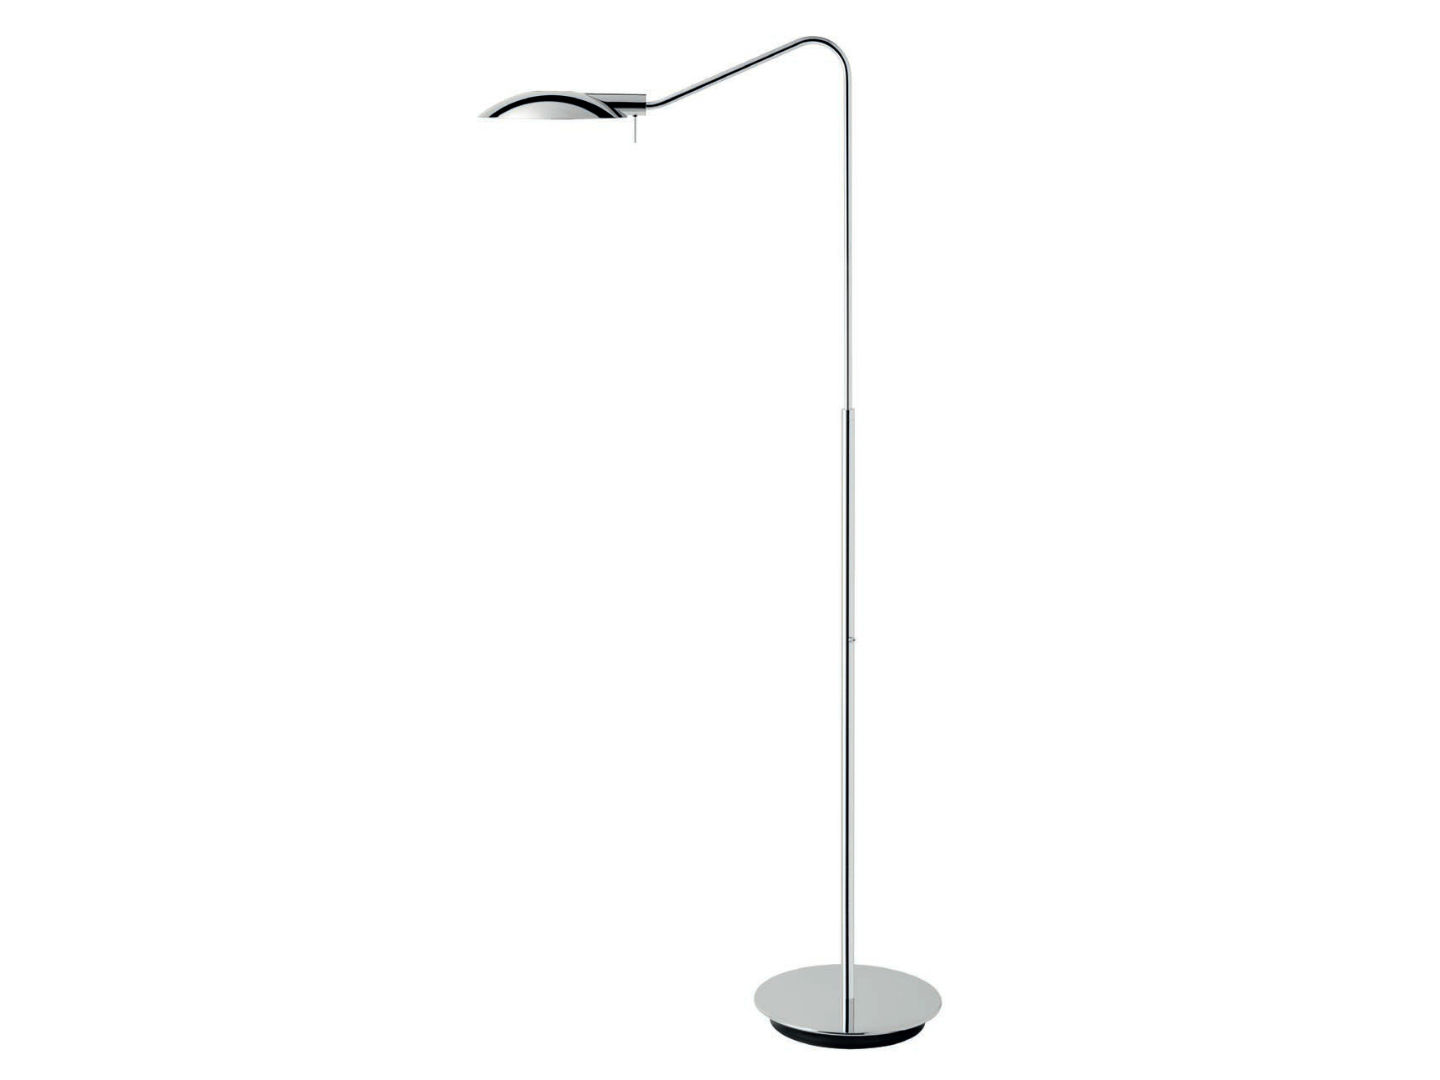 P 1062 lámpara of Floor Lamp telescópica R7s 1x200w Chrome